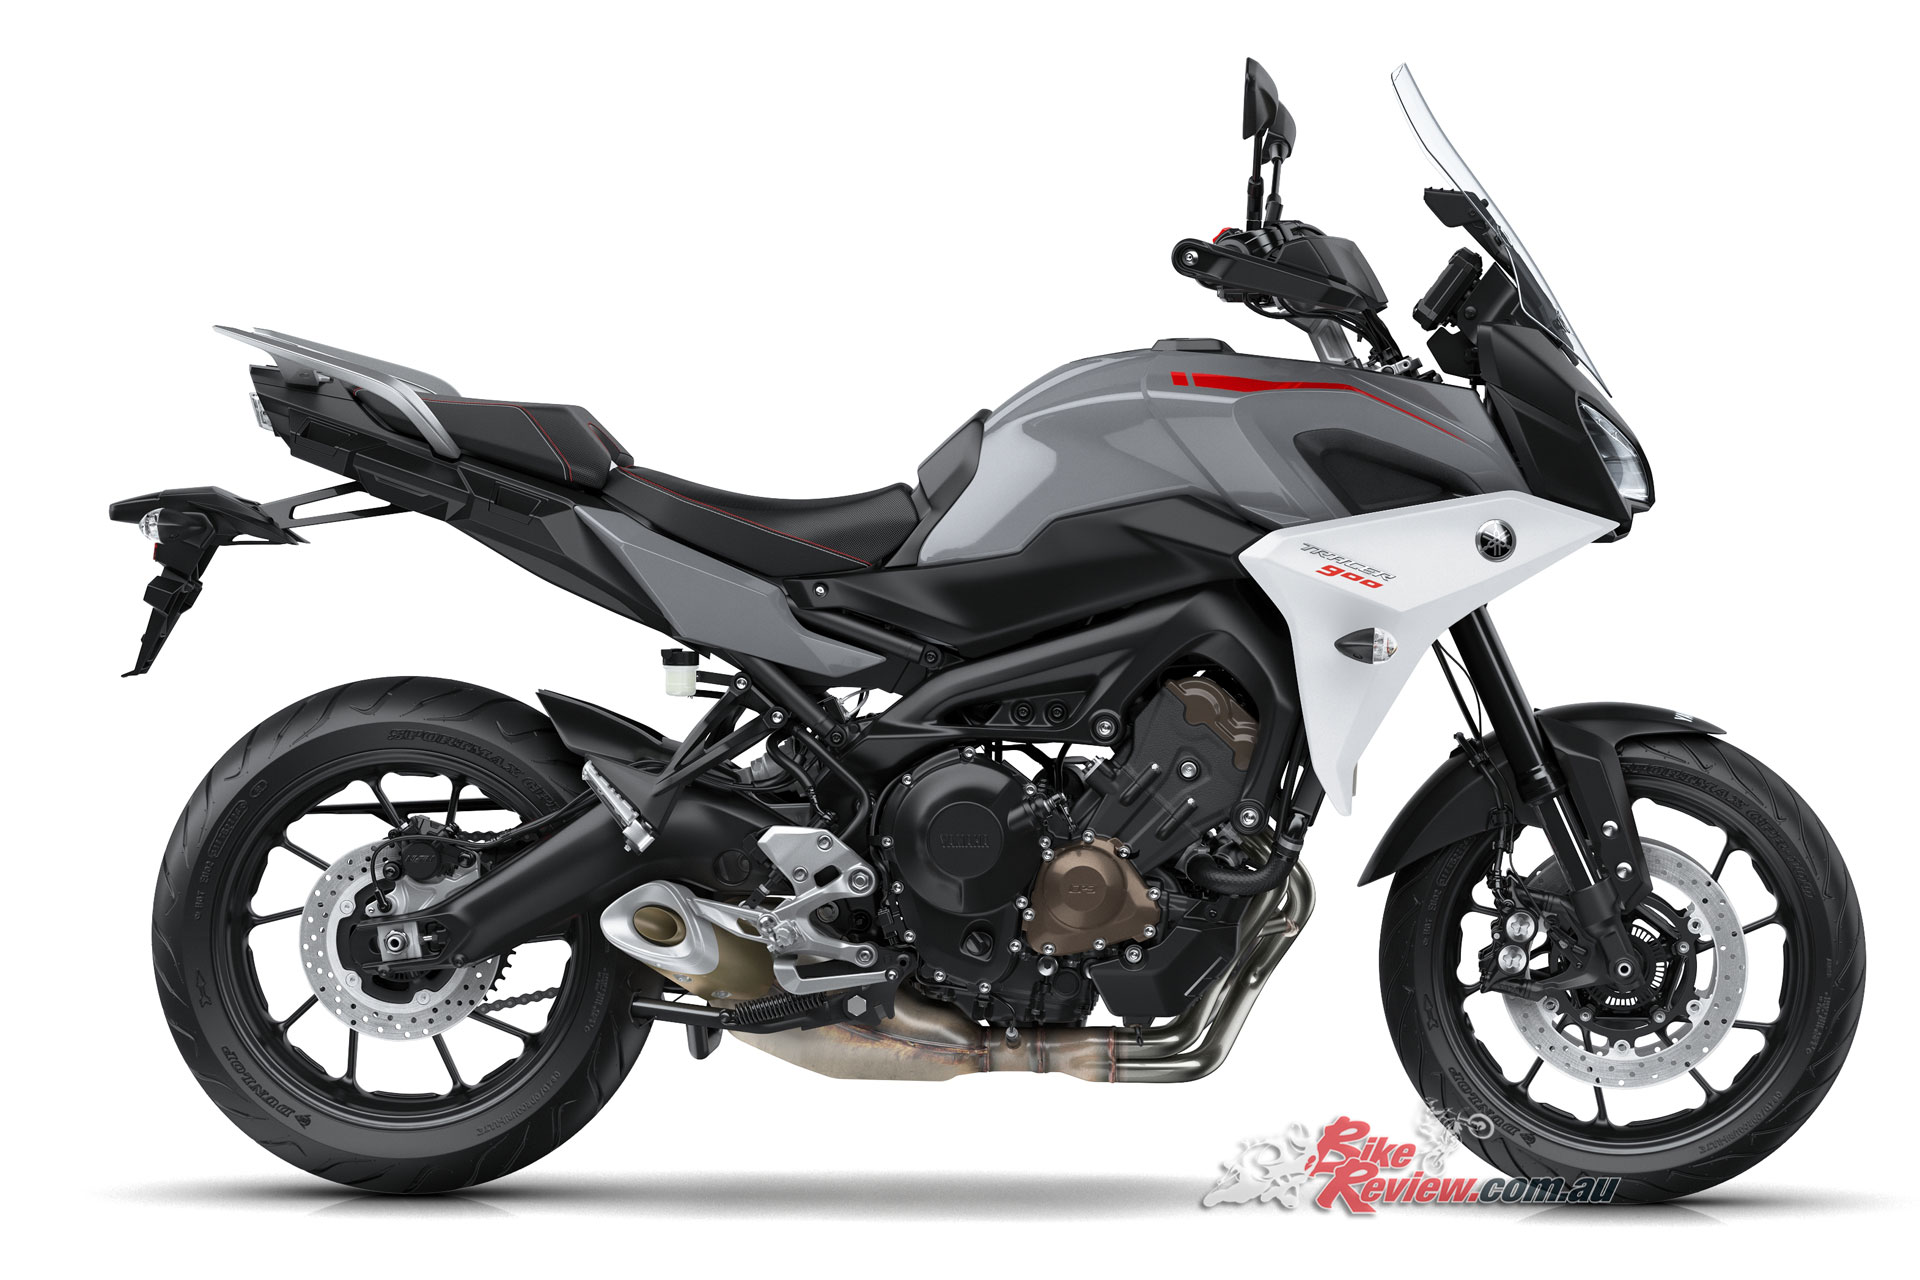 Yamaha Unveil New Tracer Gt Amp Mt 09 Sp At Eicma Bike Review